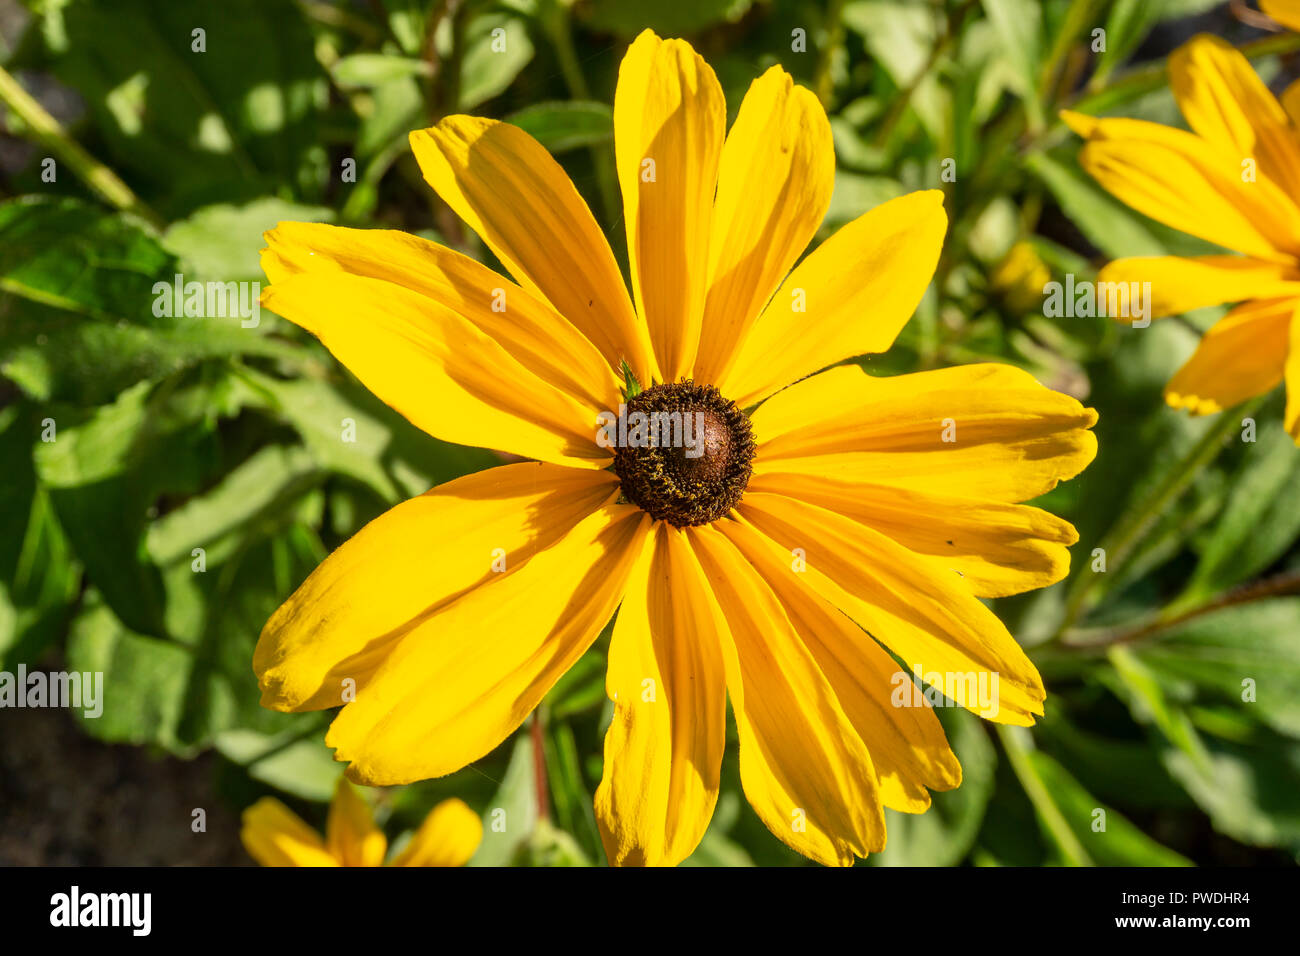 Berlin, Germany, October 10, 2018: Close-Up of Yellow Flower Stock Photo